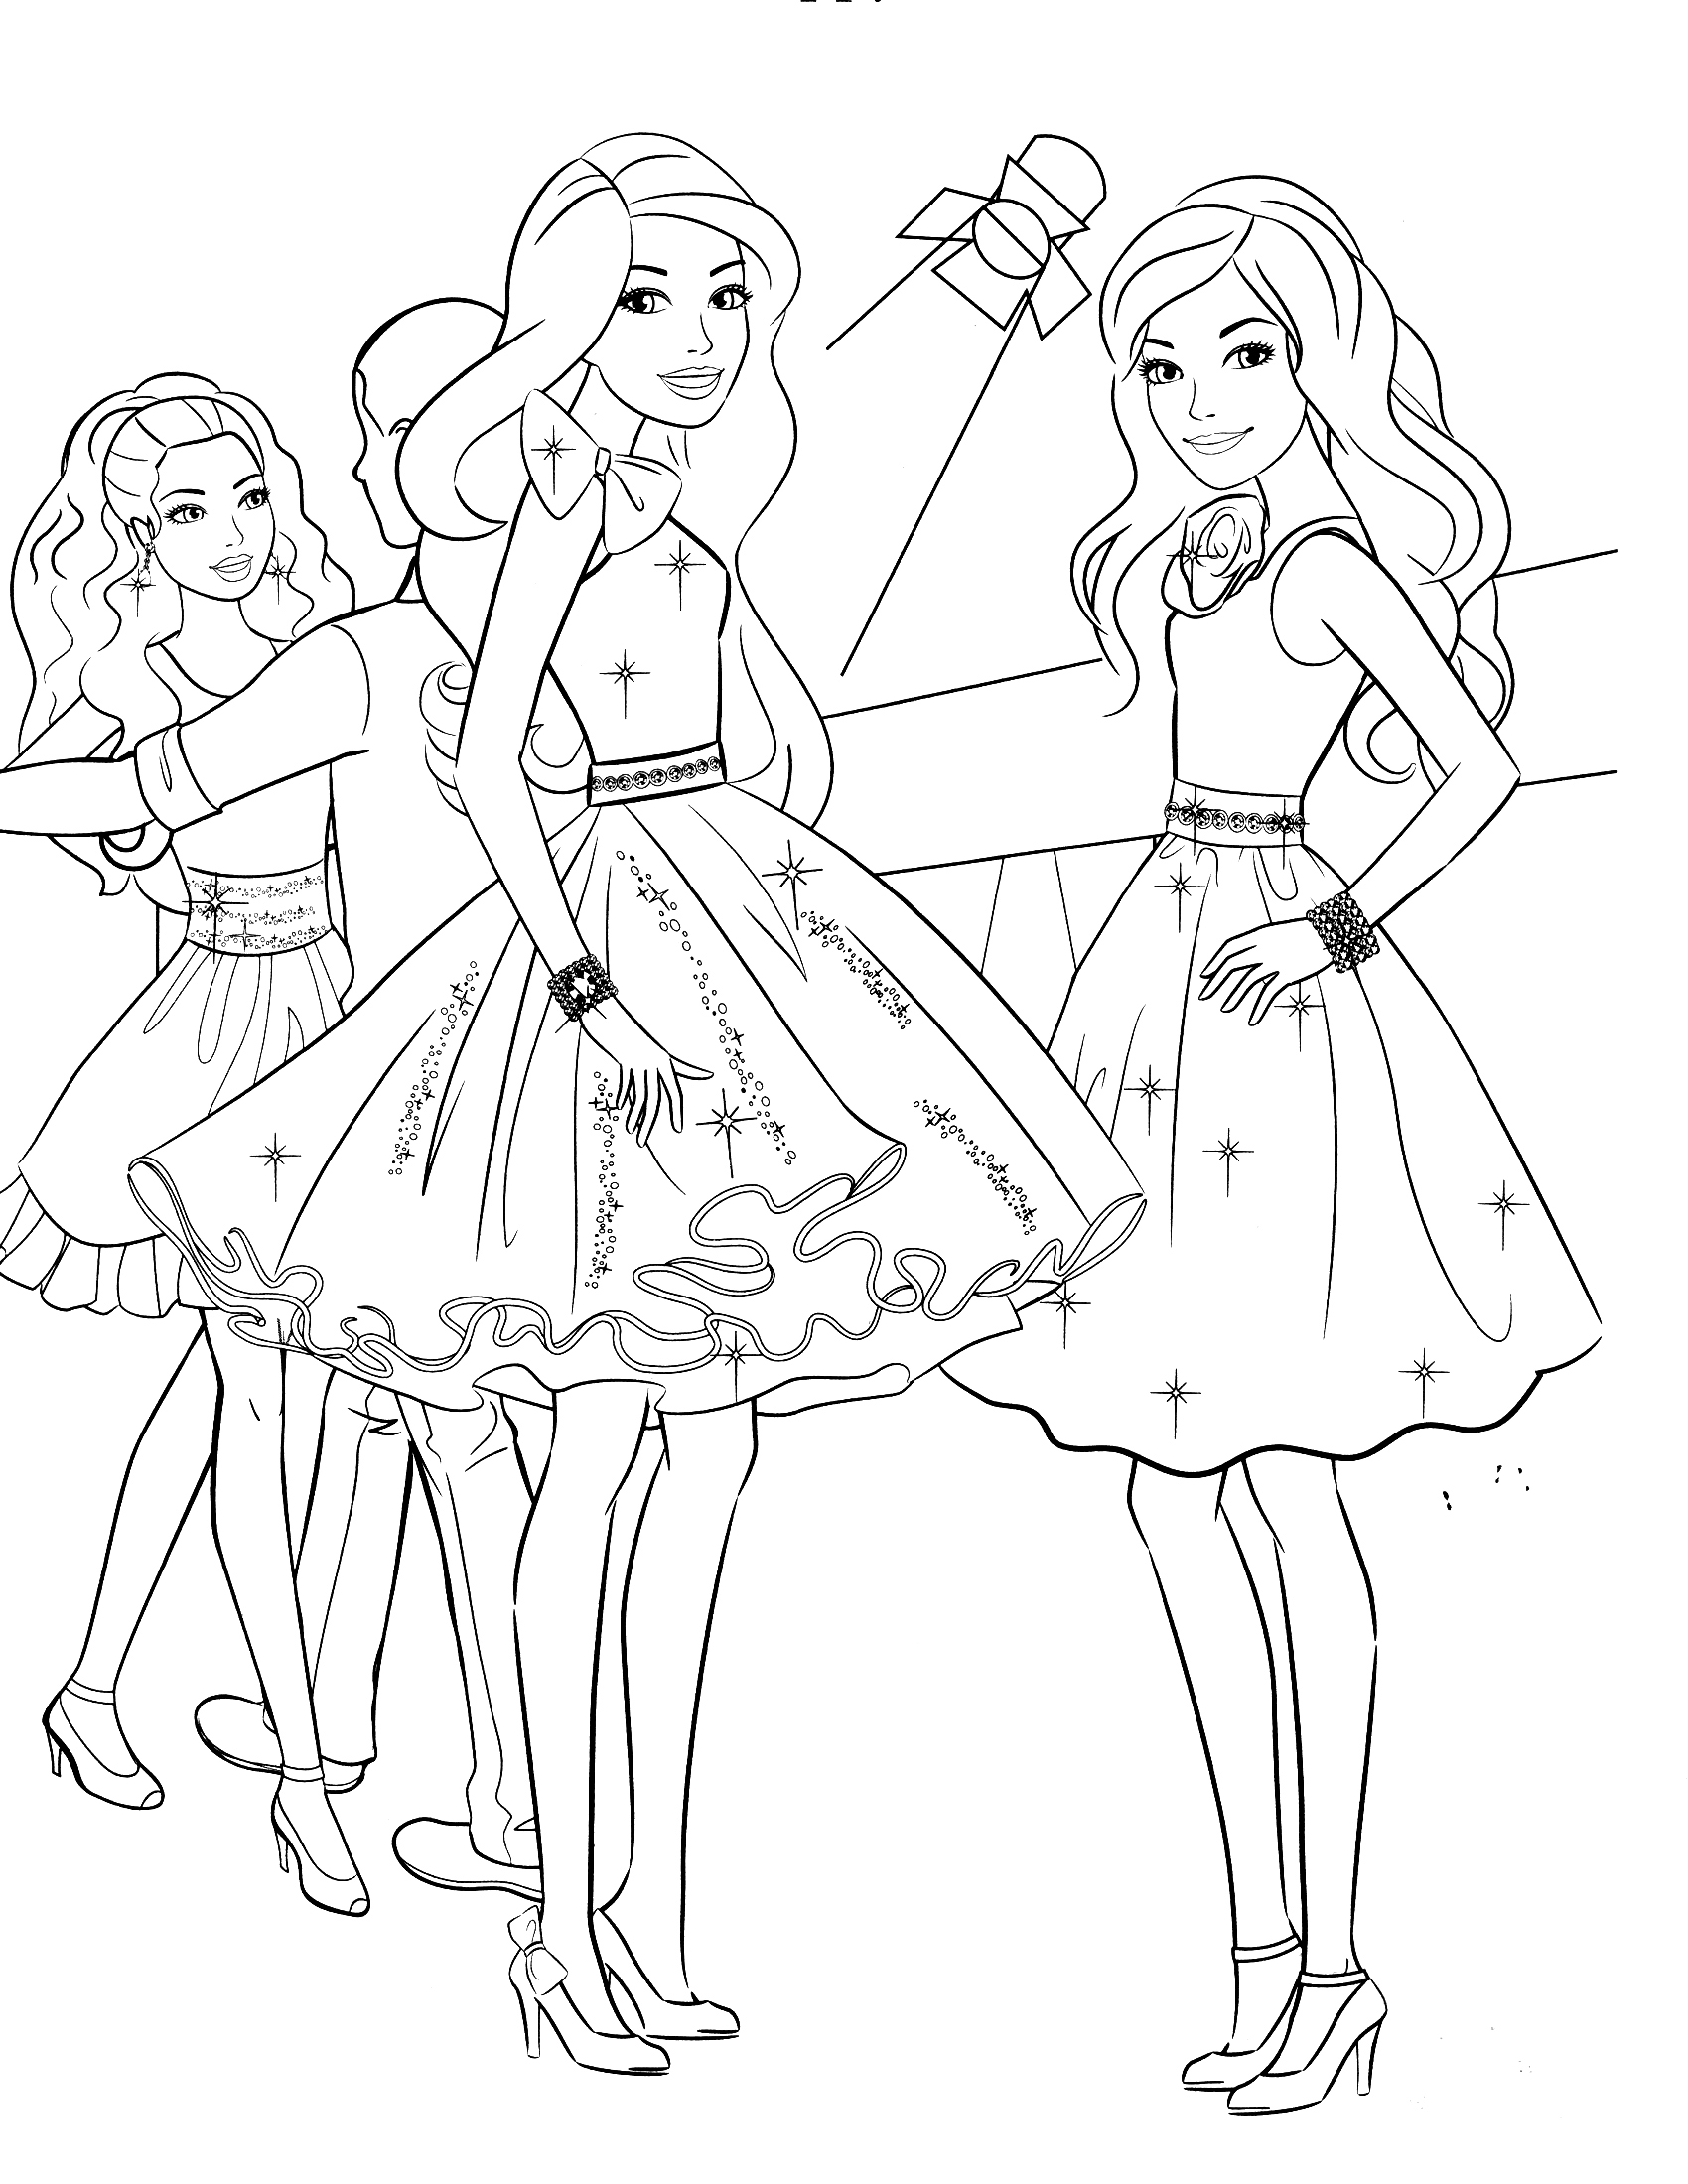 colouring in pictures for girls 40 barbie coloring pages for kids pictures in girls colouring for